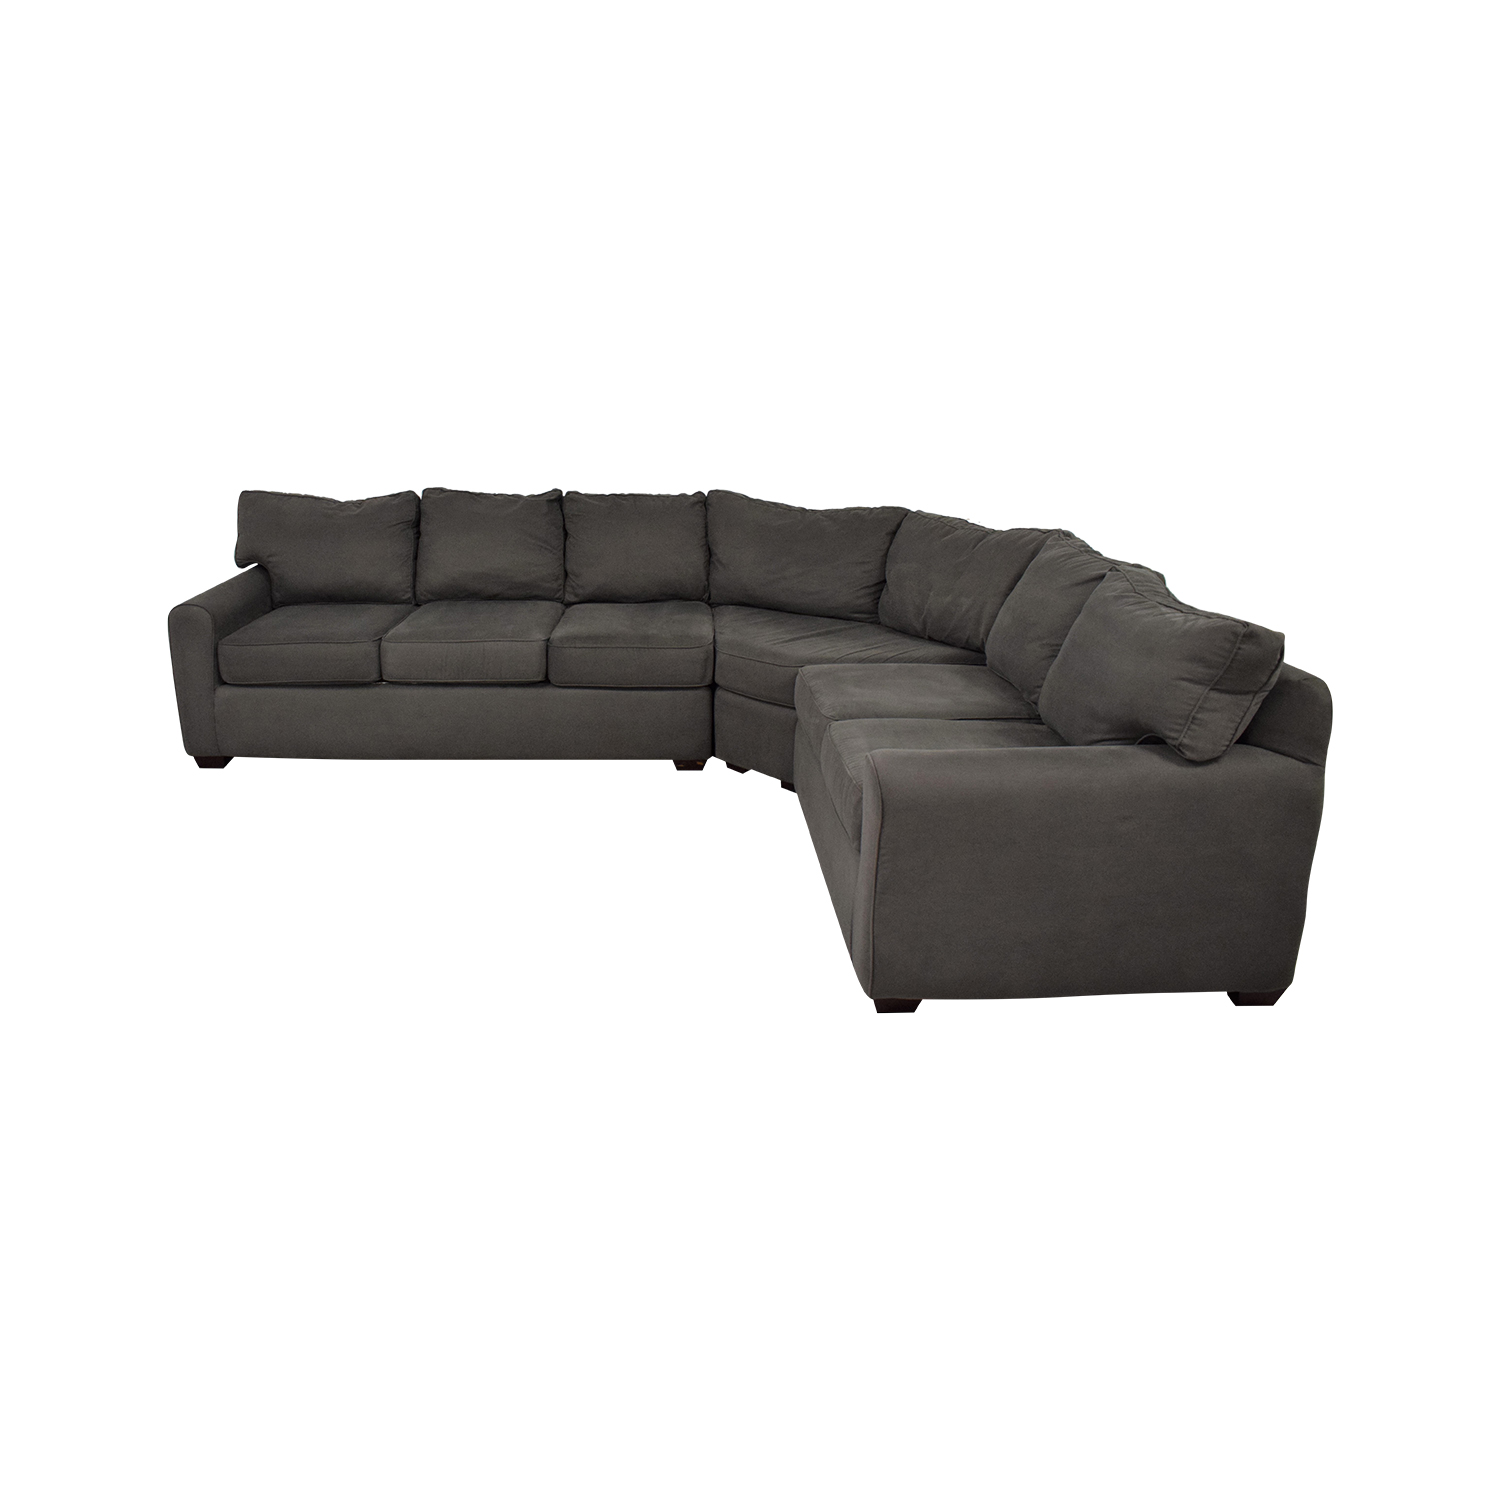 Metropia Metropia Sectional Sofa